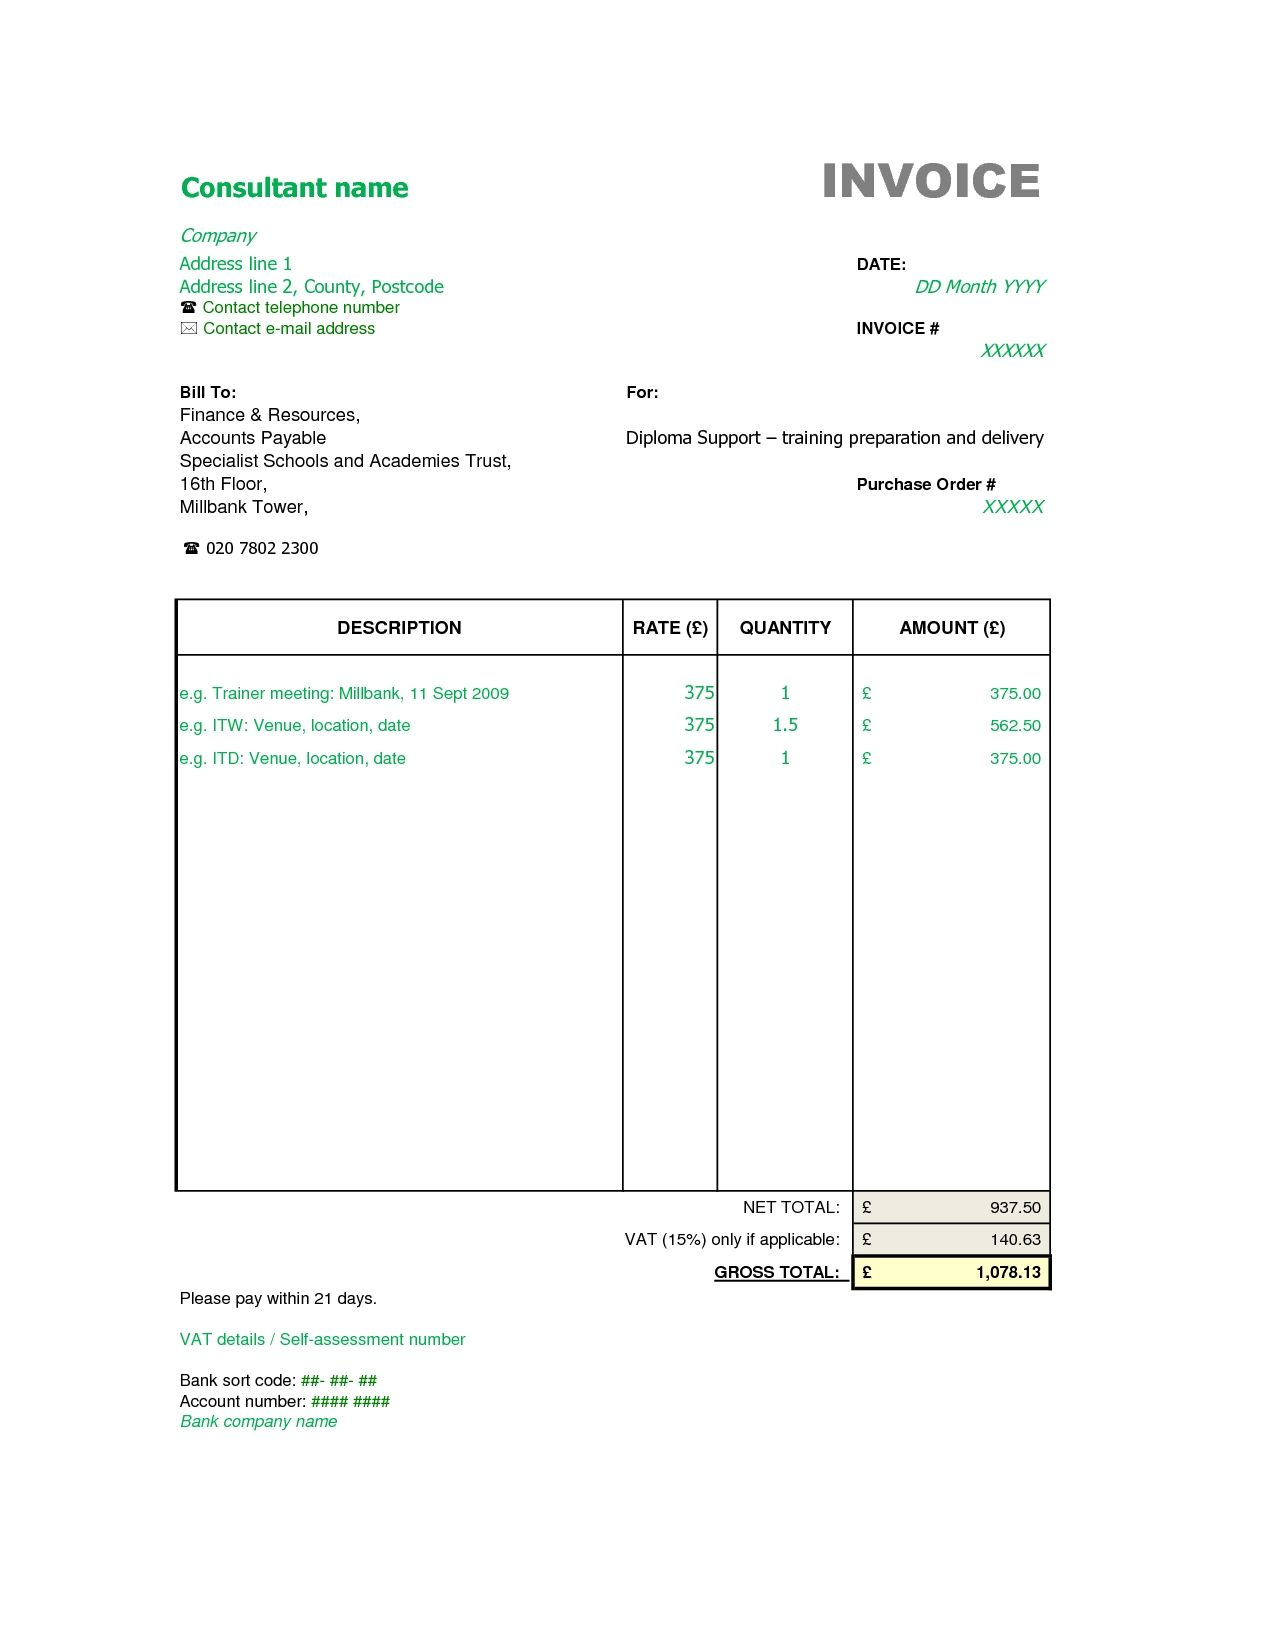 Freelance Spreadsheet With Regard To Consultant Invoice Template Free And Service With Contractor Receipt